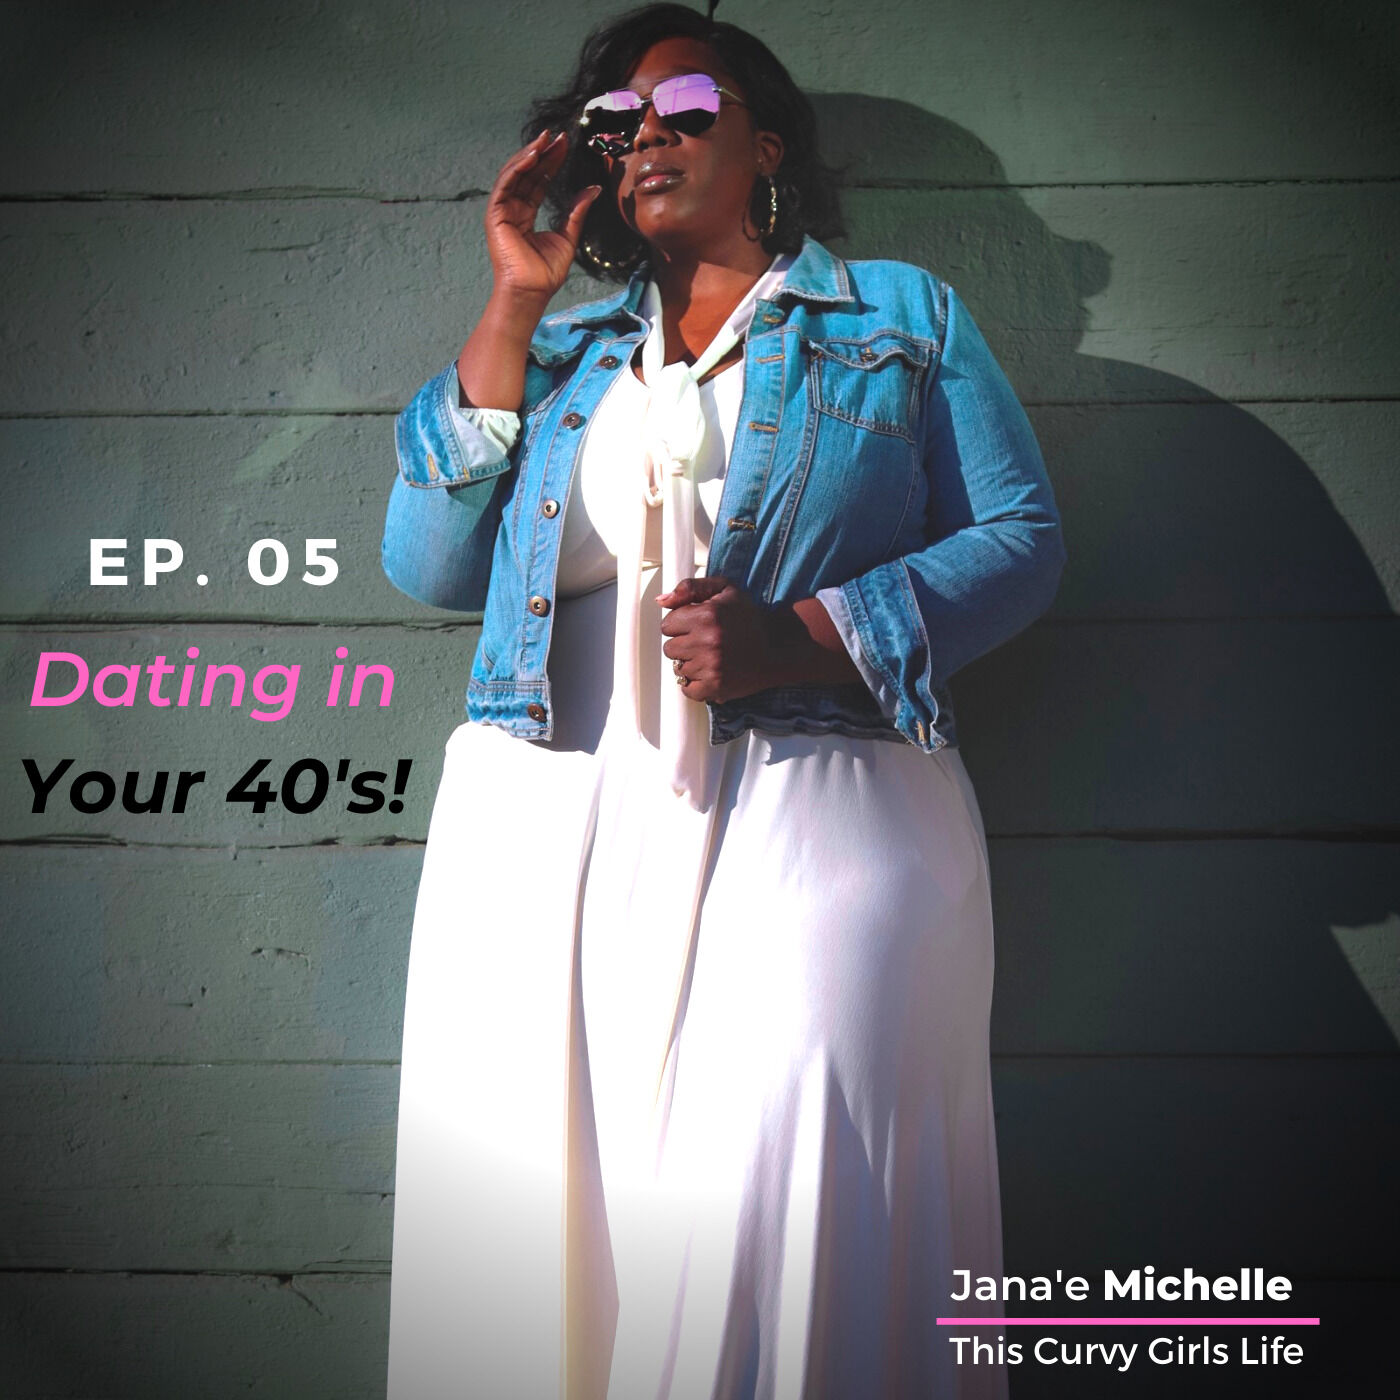 Dating in Your 40's